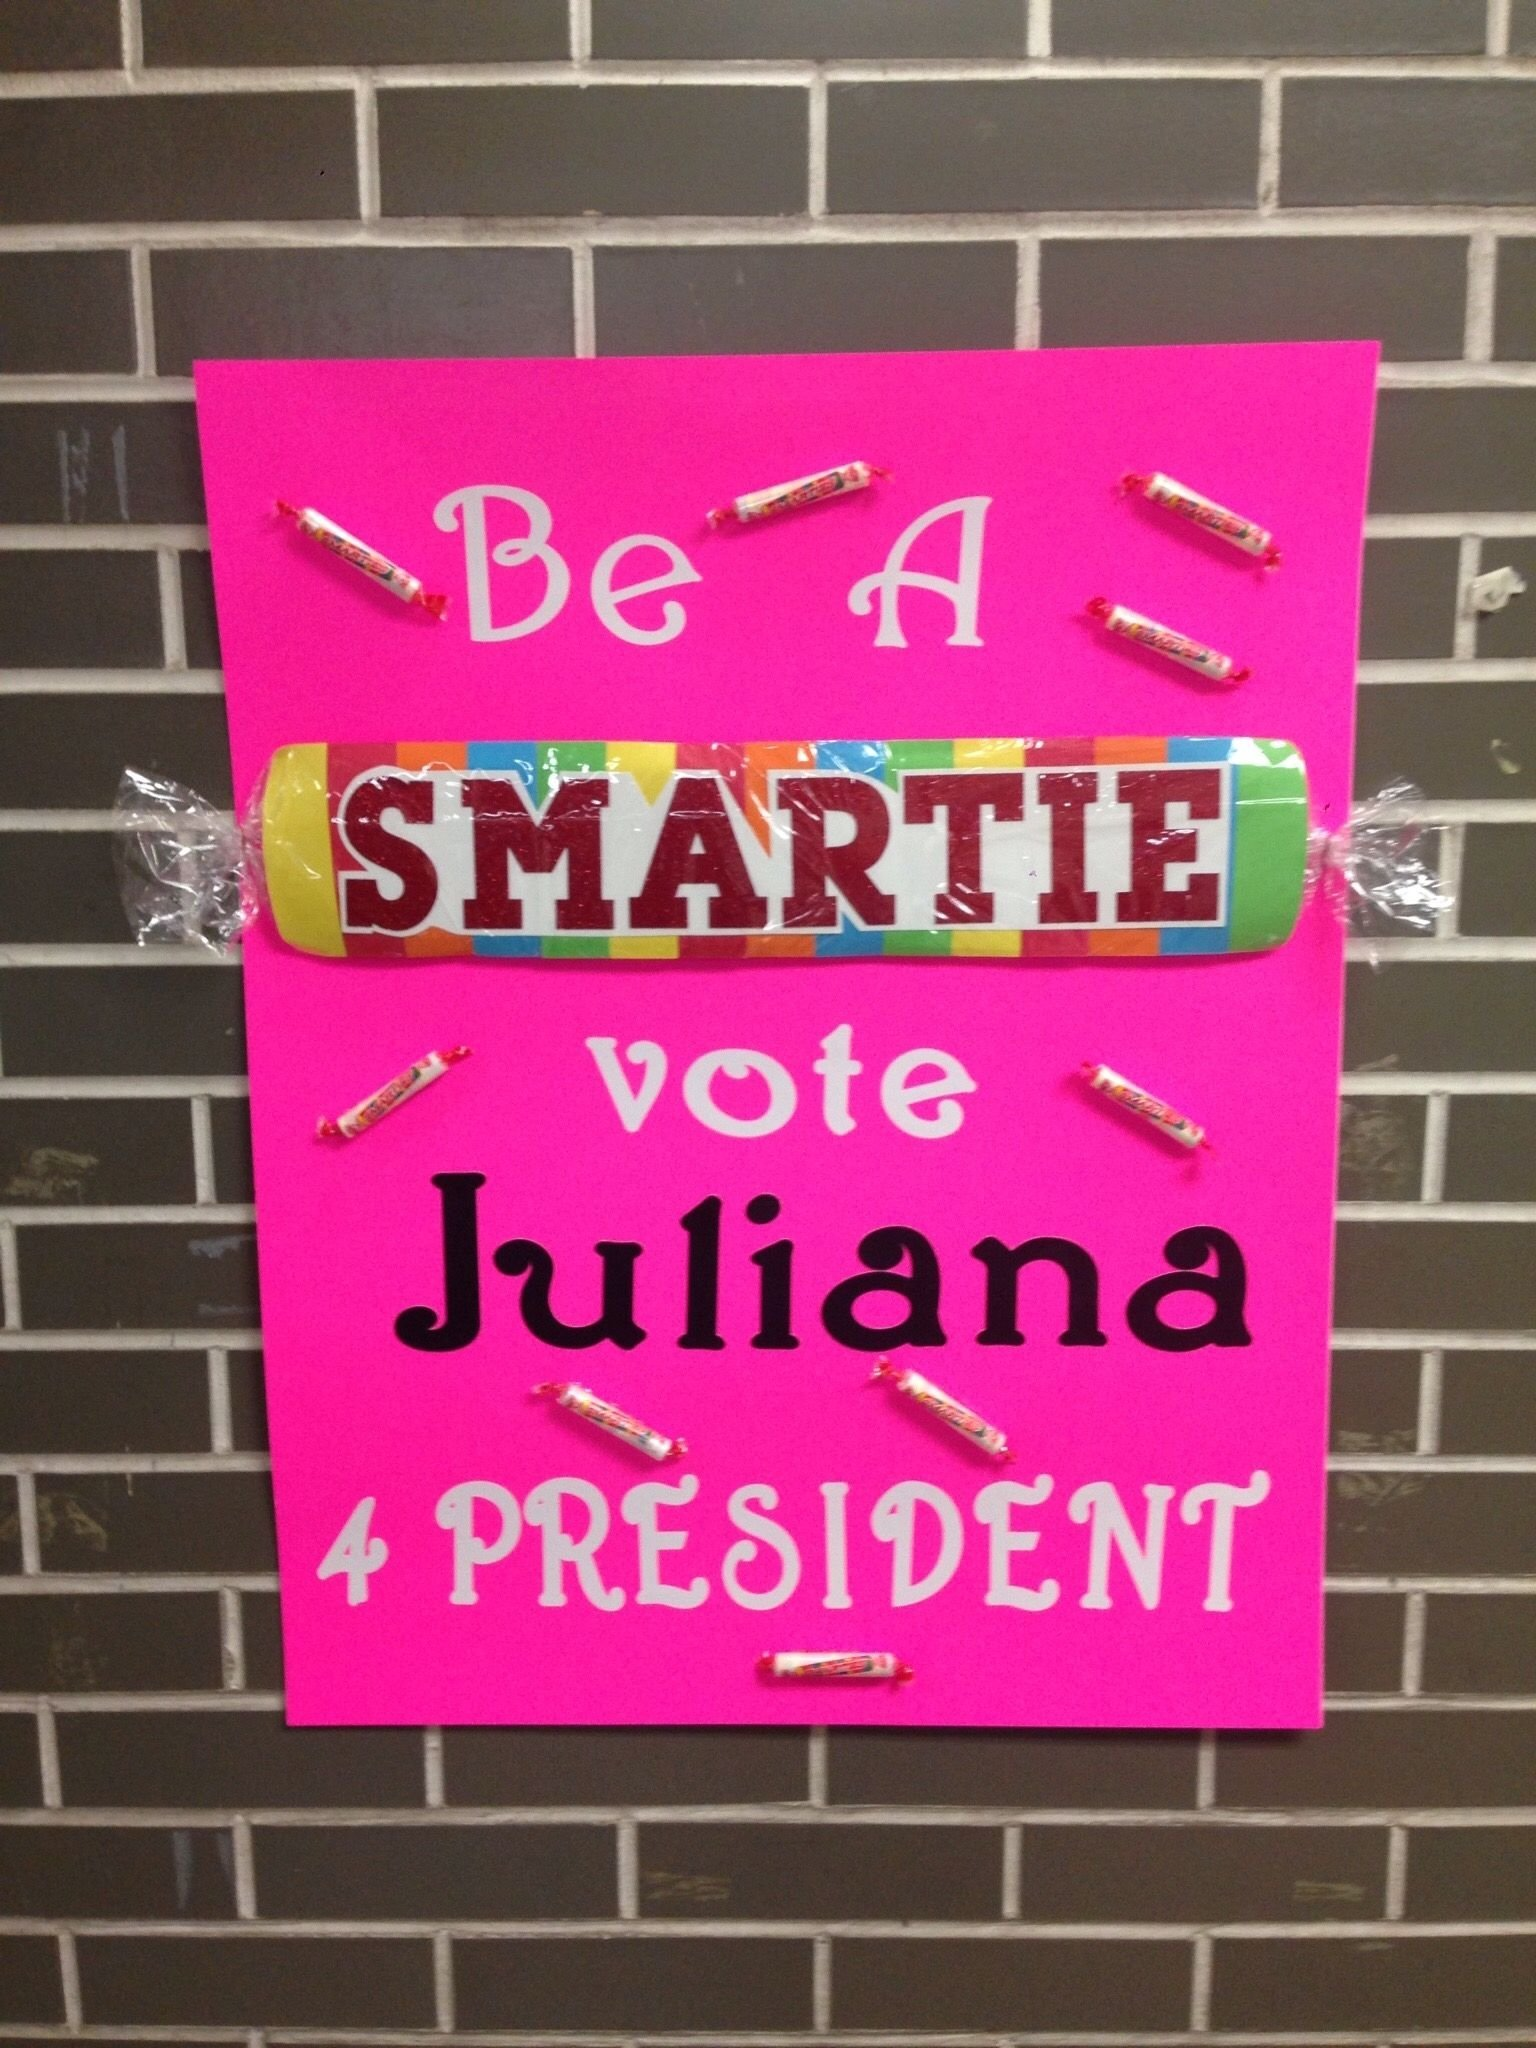 10 Amazing Middle School Student Council Ideas student council election poster juliana pinterest students 17 2020